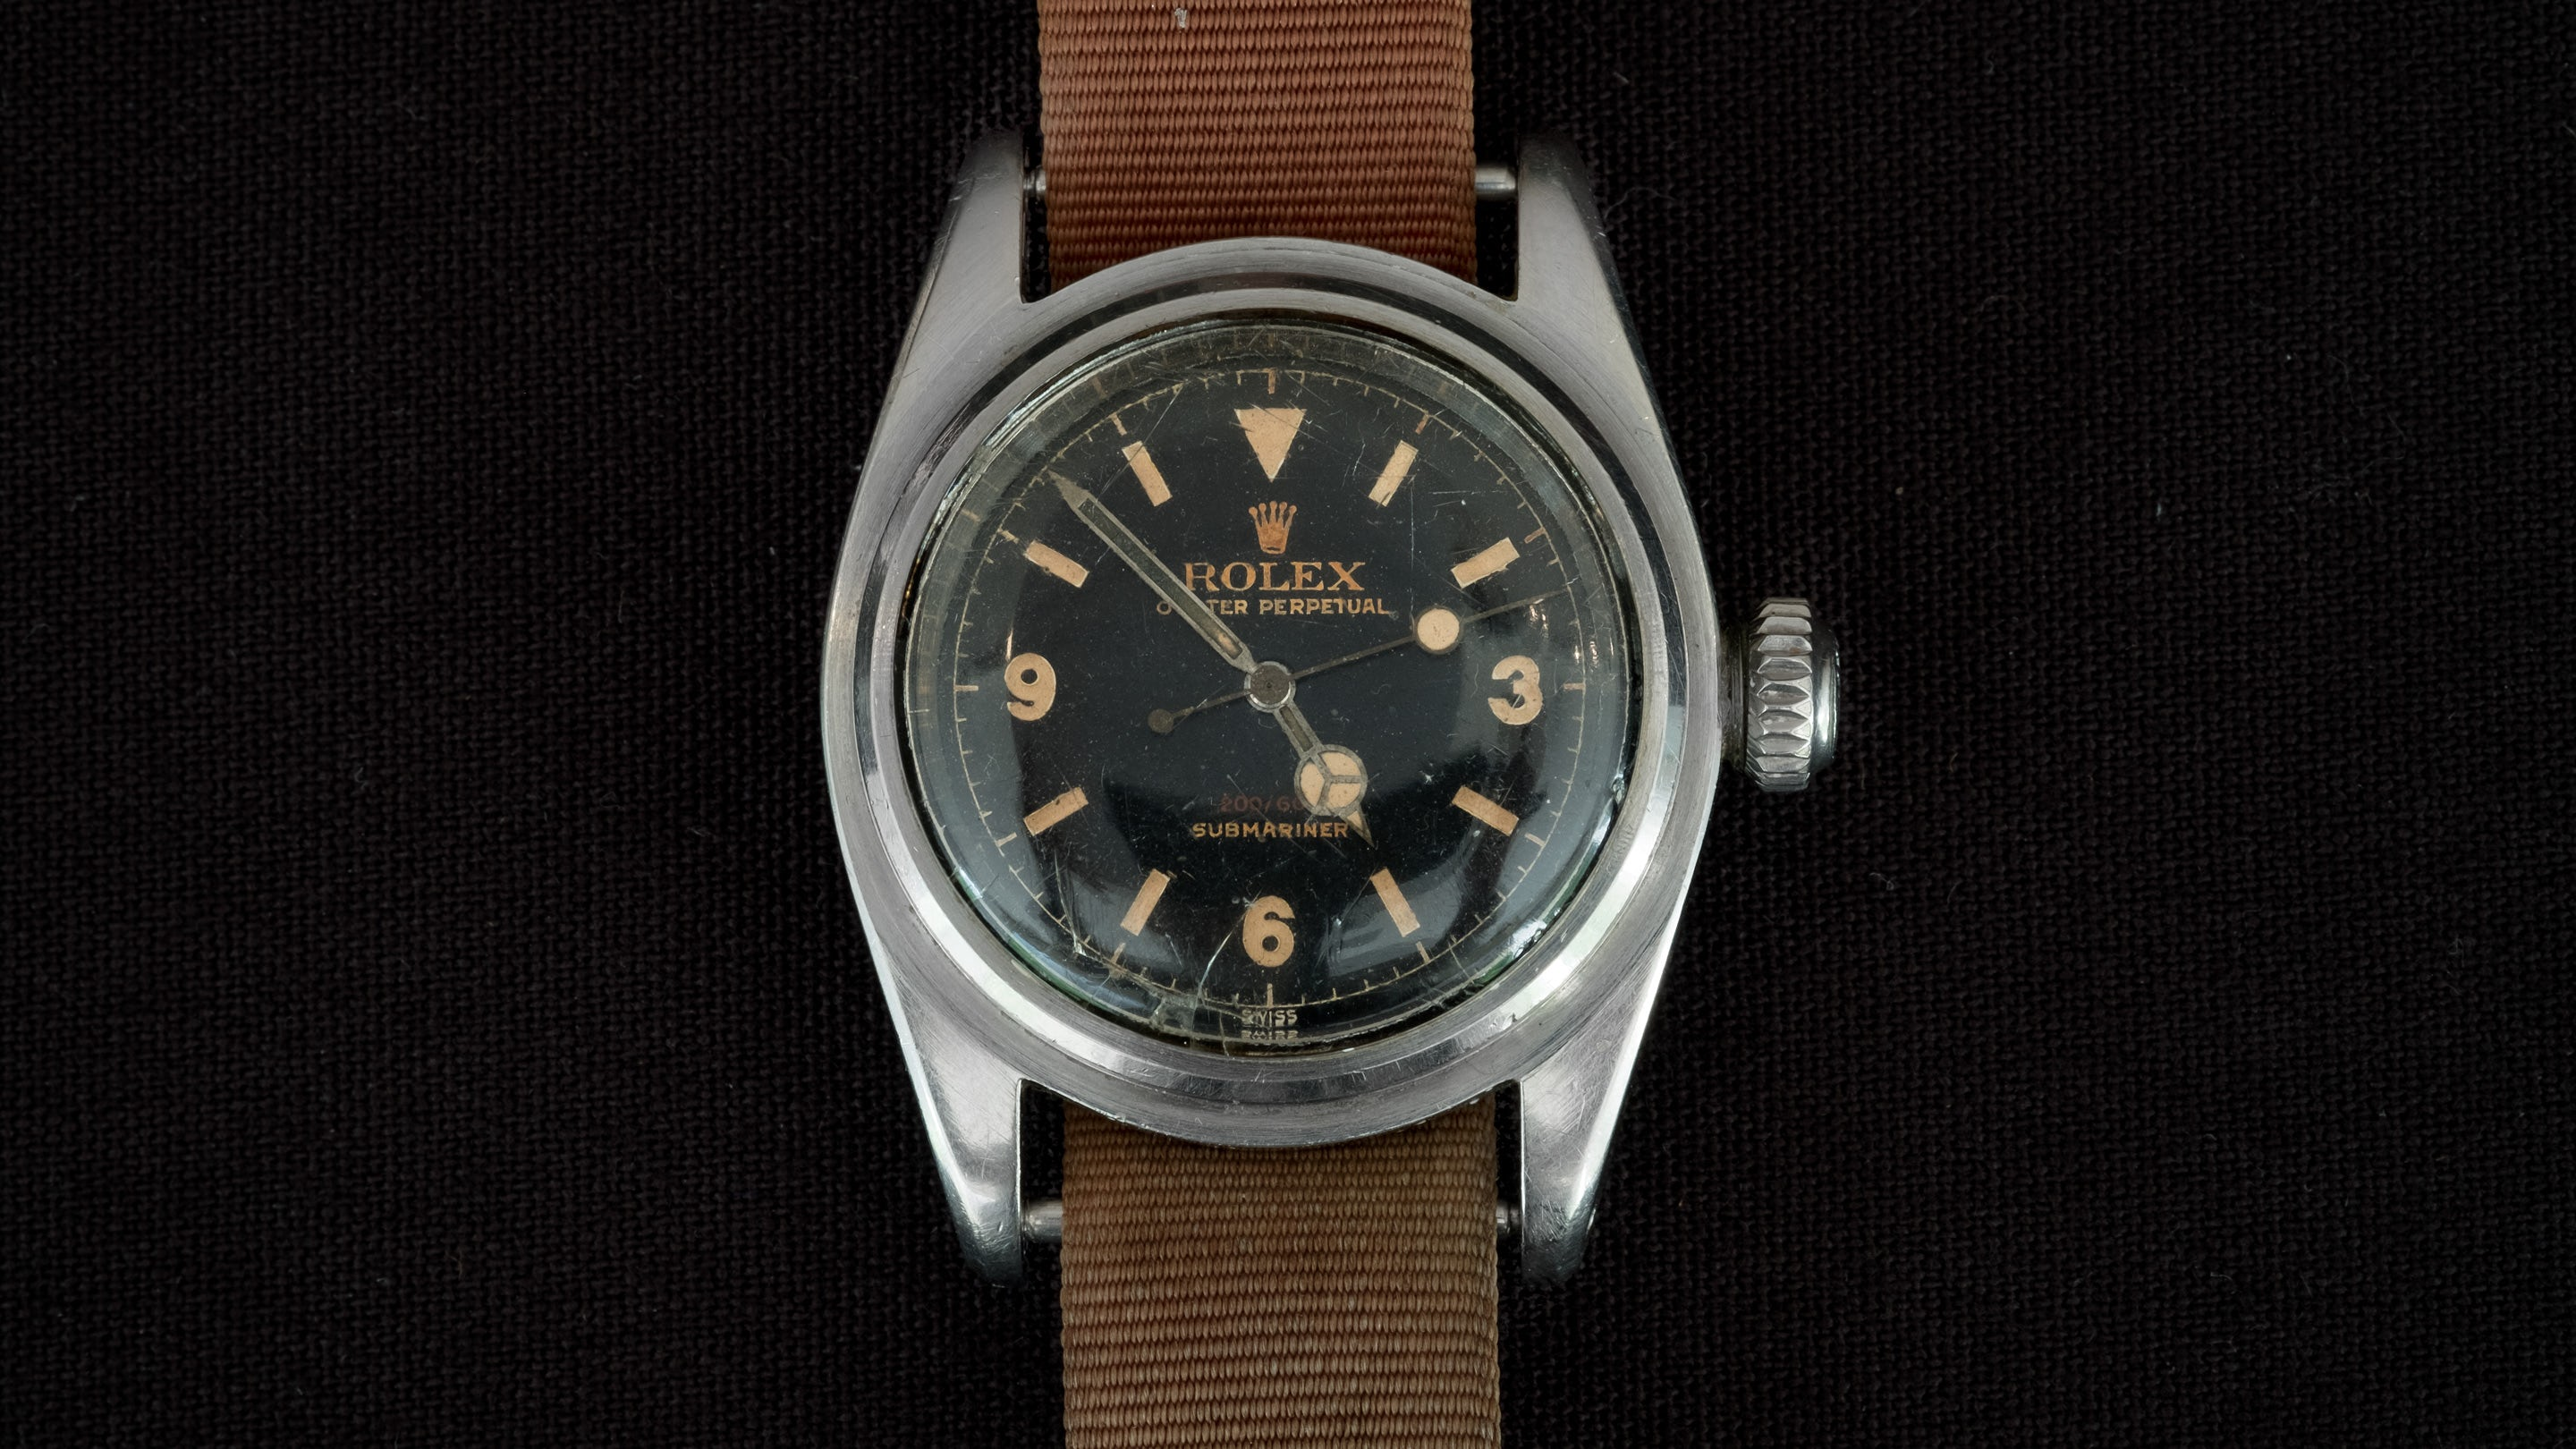 This Submariner sold for over $1,000,000 this year at auction